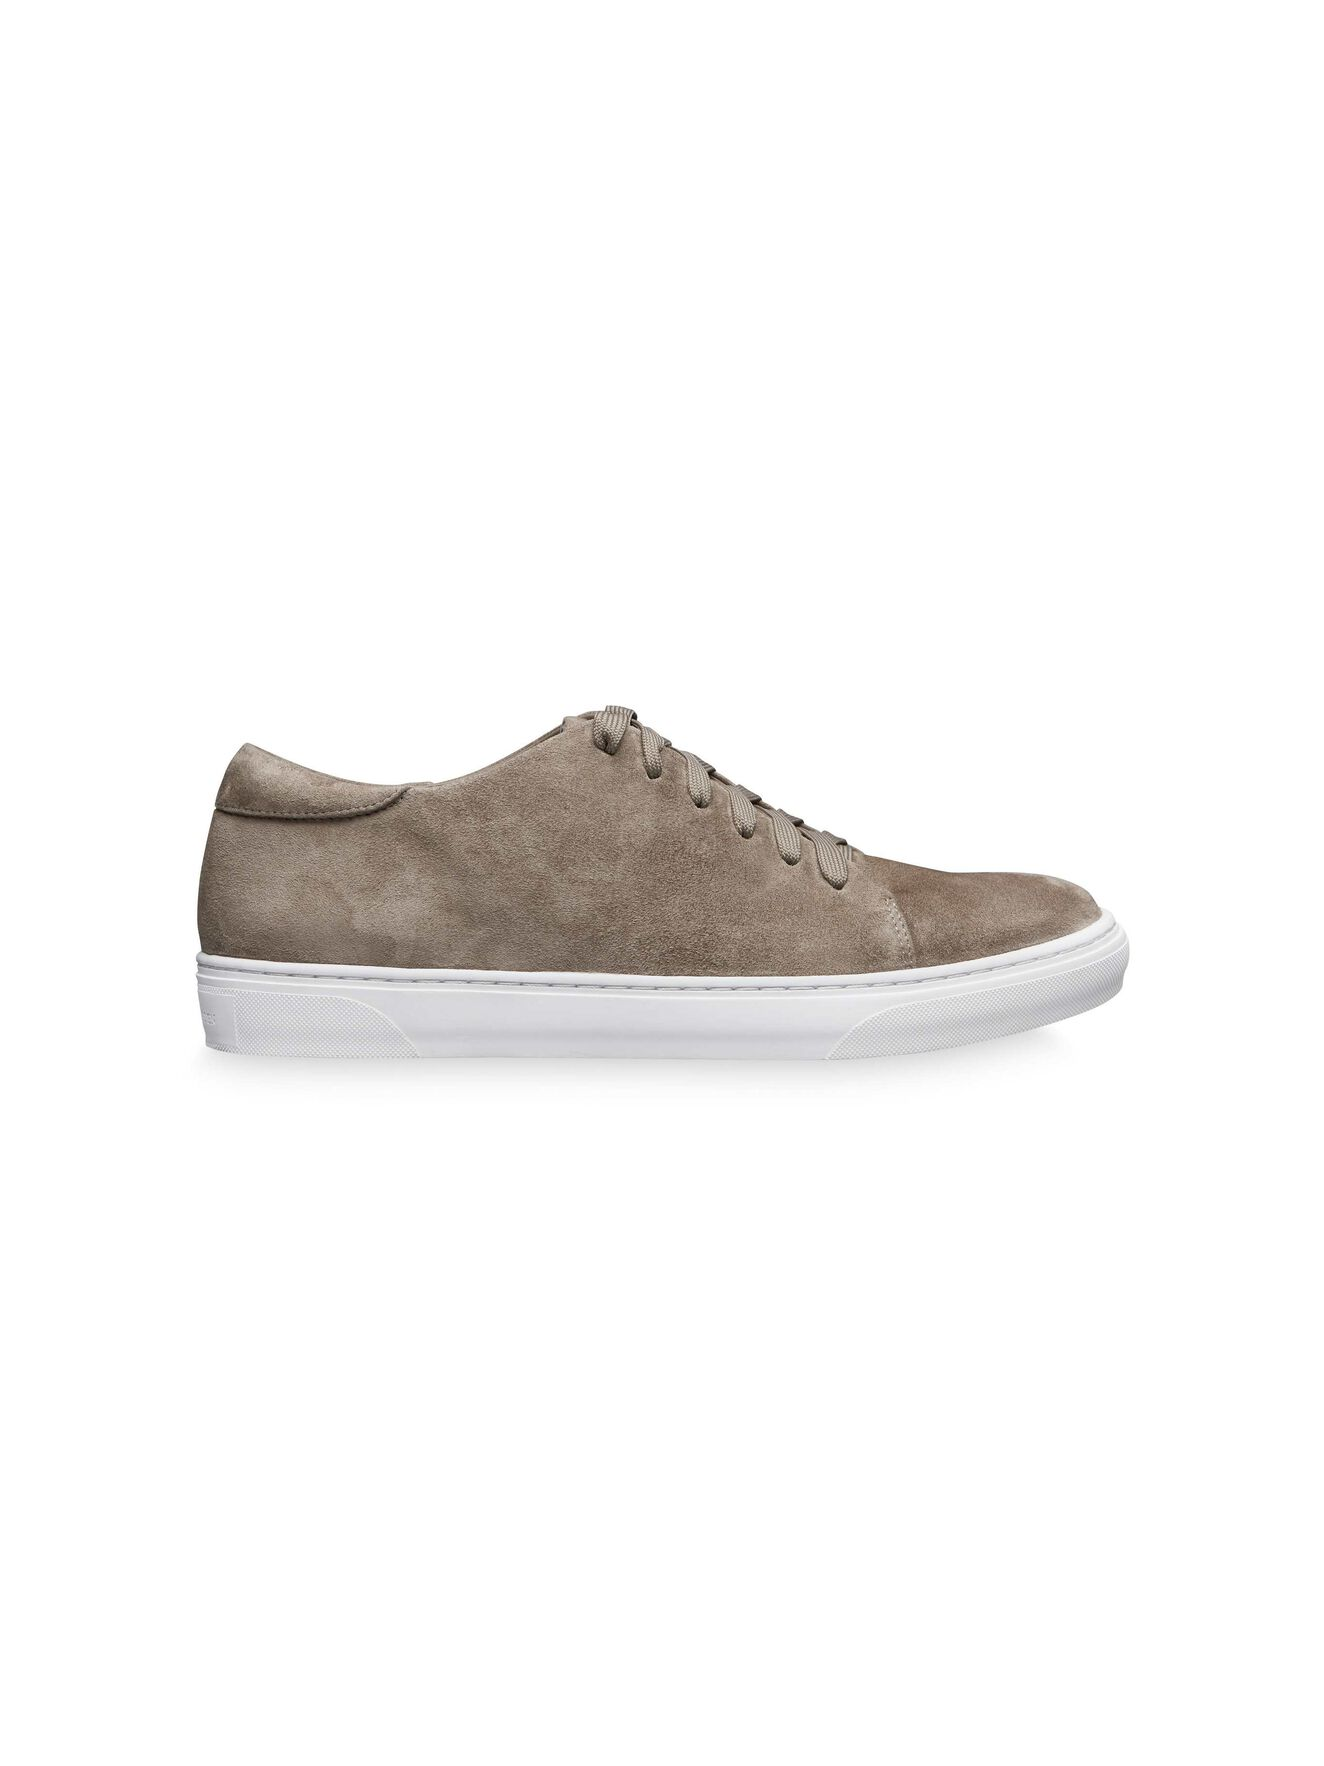 Yvelle S Sneaker in Dawn misty from Tiger of Sweden